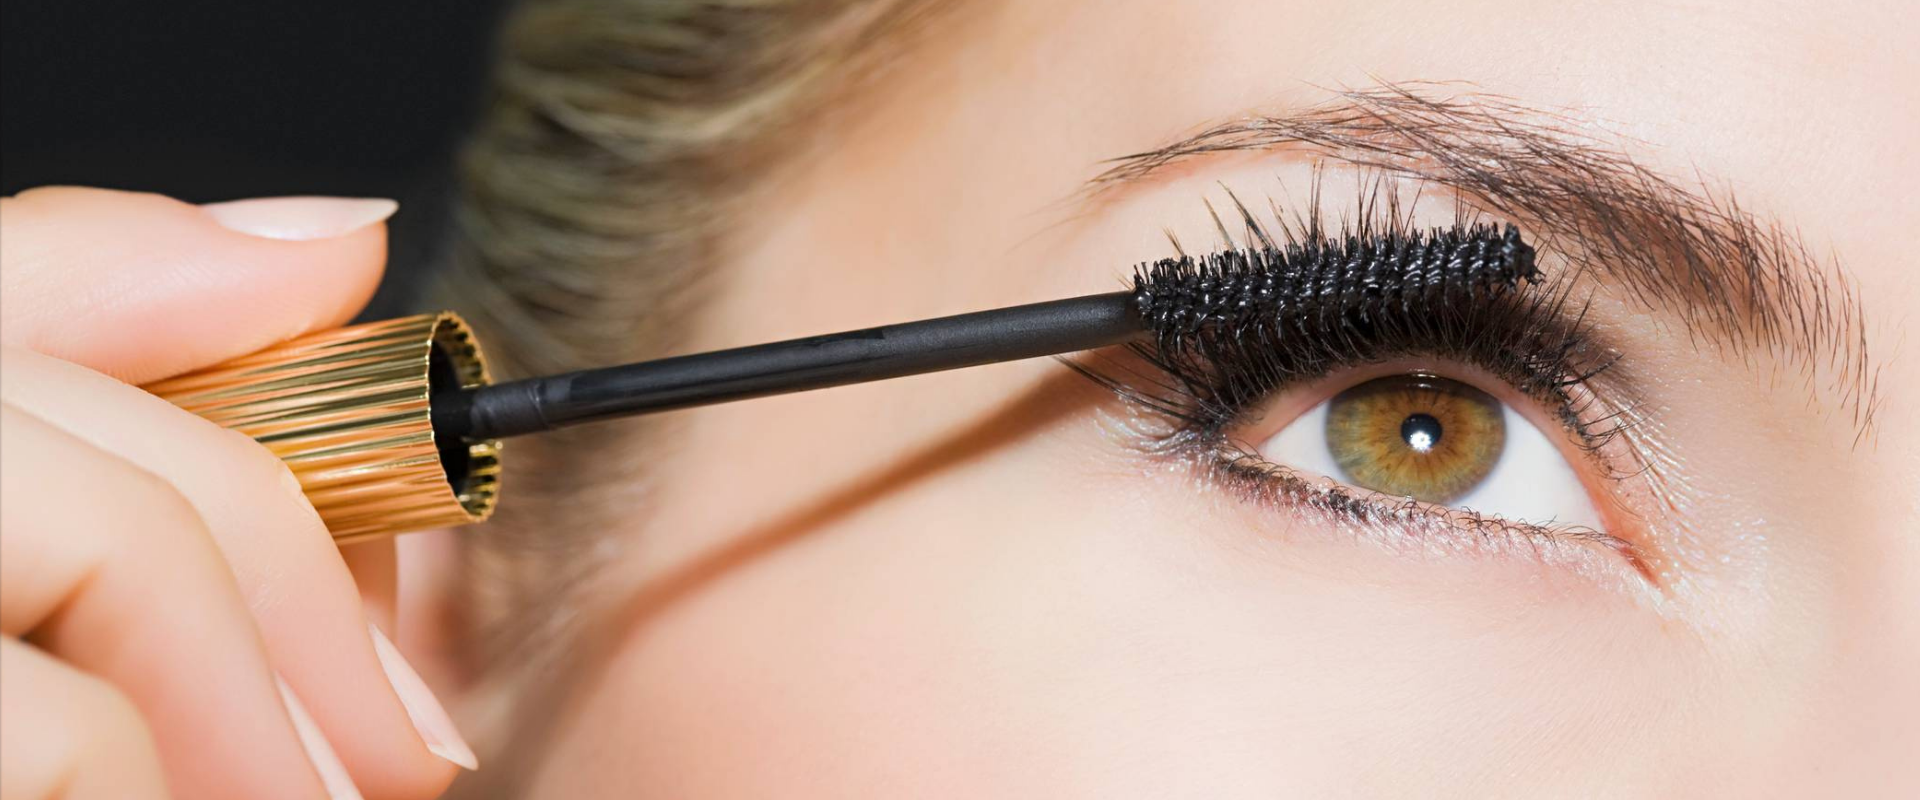 The 6 Best Mascaras of the Moment - Mascara for Volume Curl Natural Waterproof